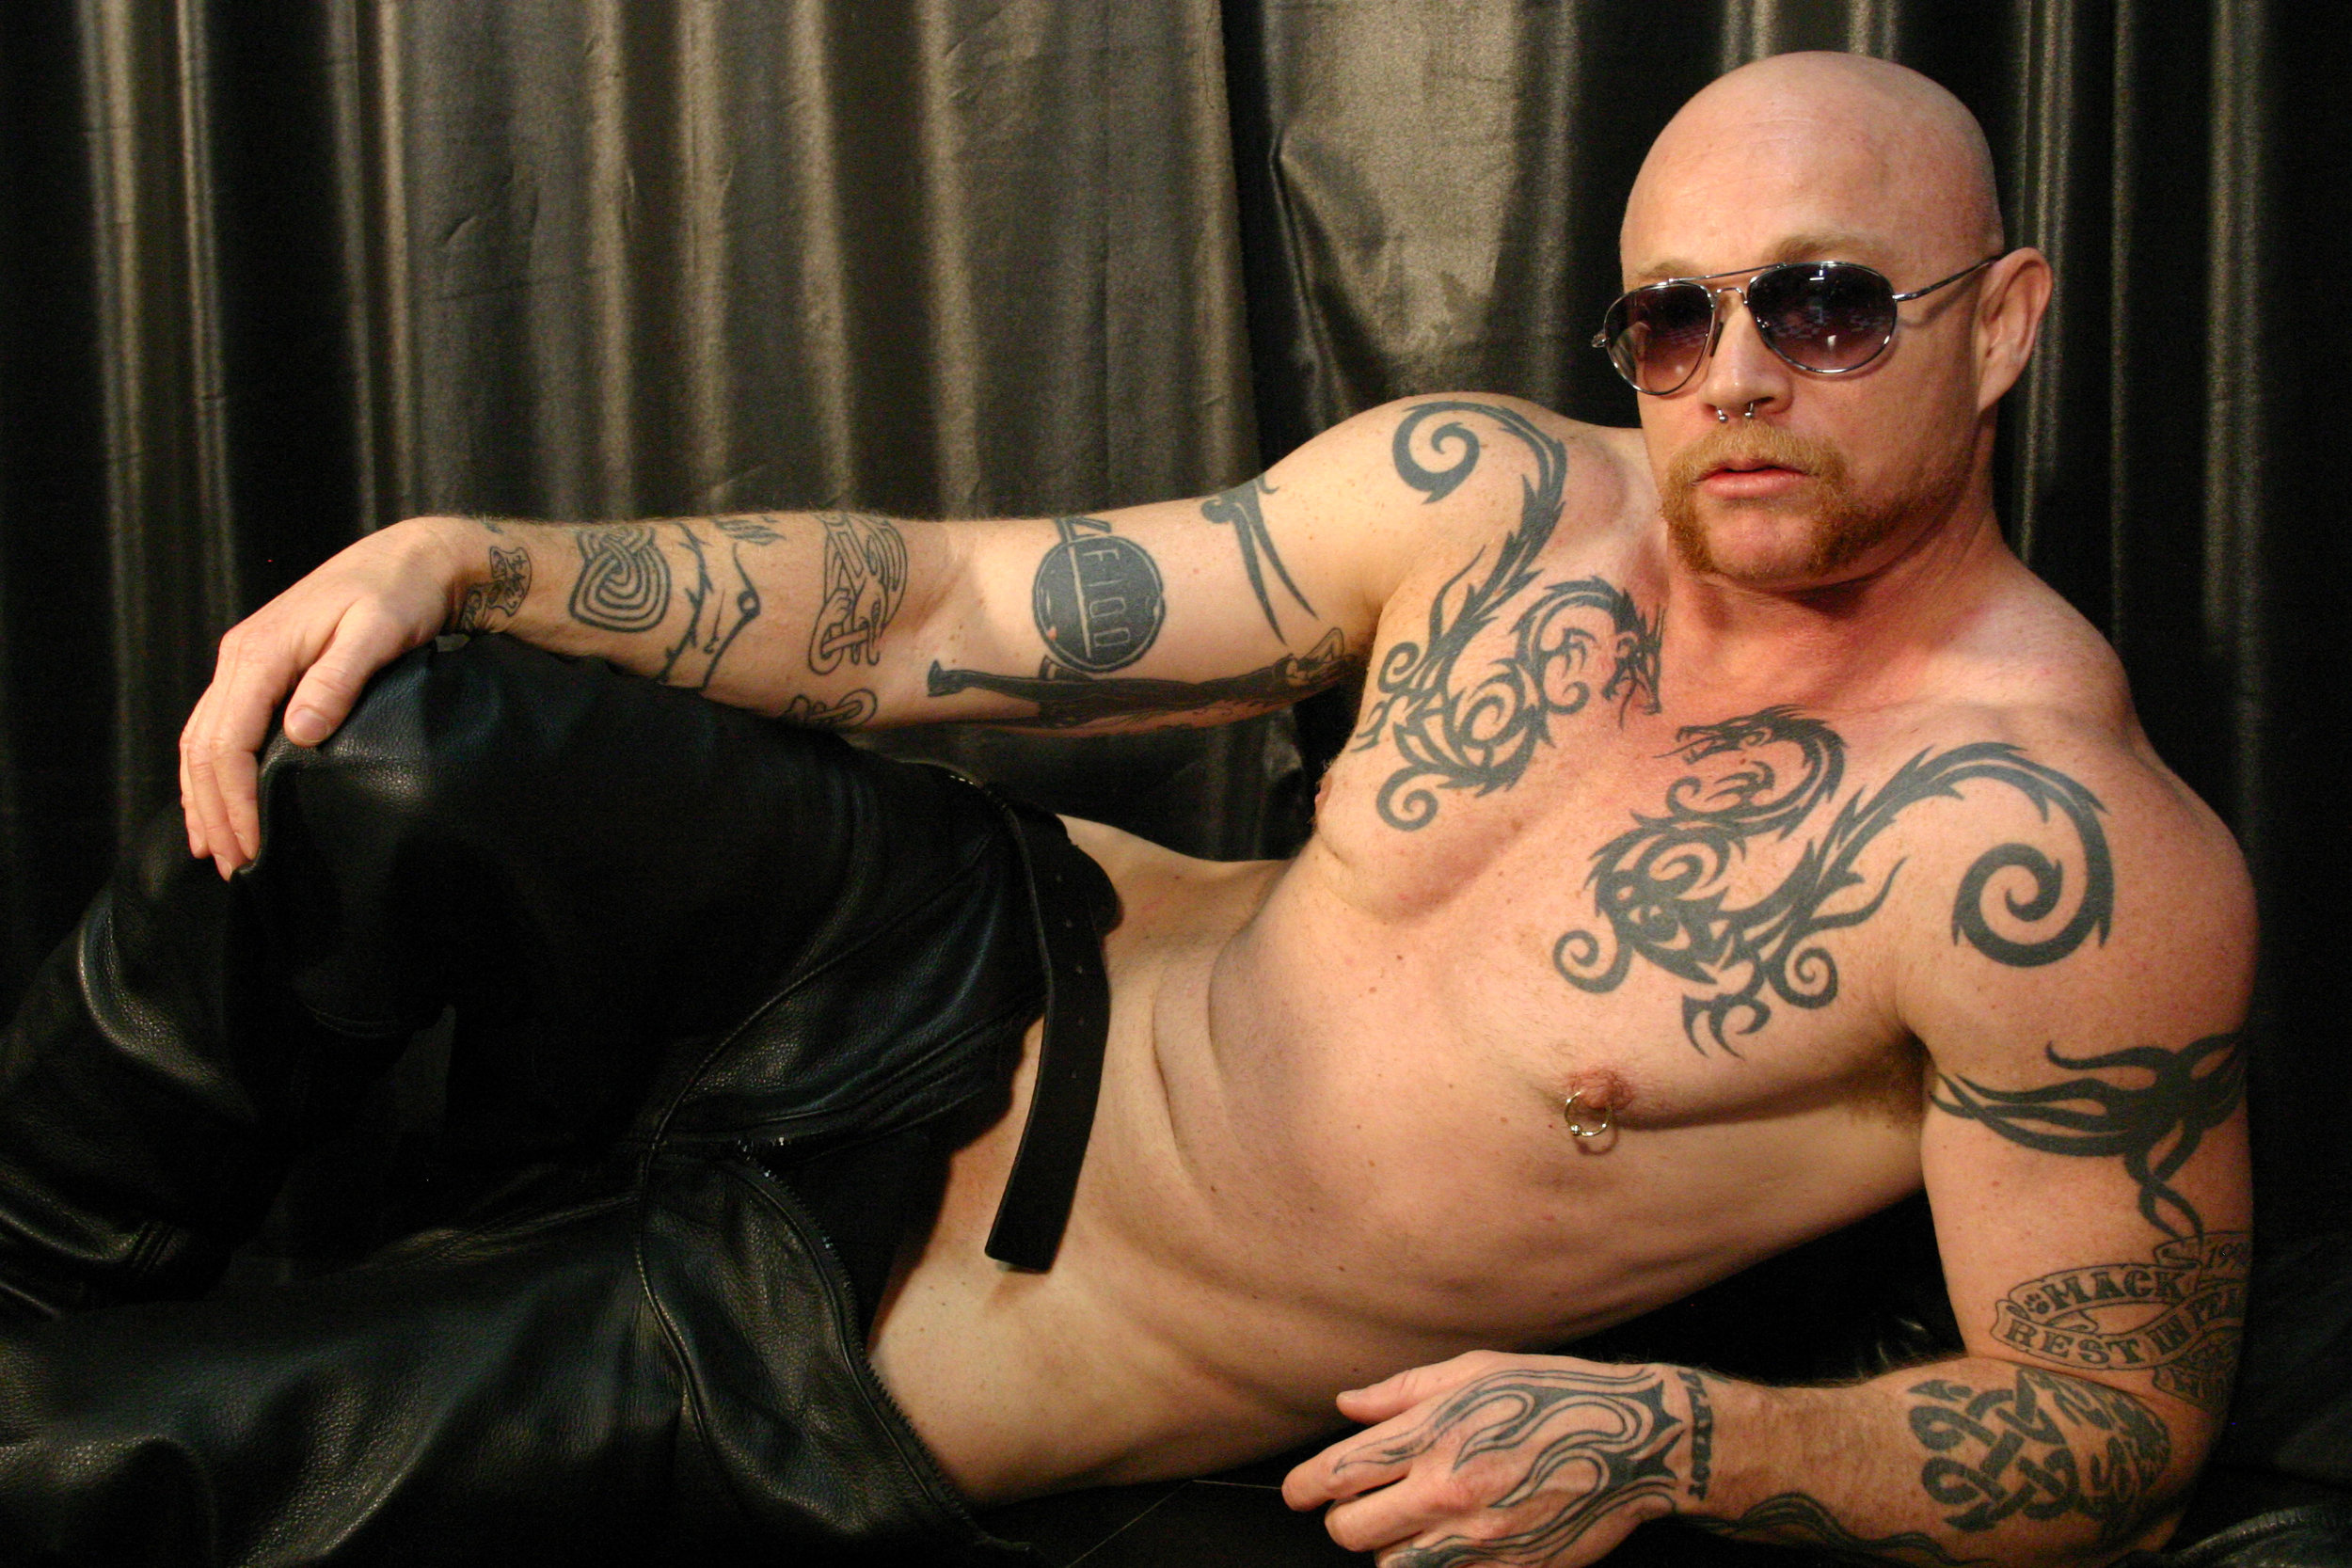 PHOTO CREDIT: BUCK ANGEL ENTERTAINMENT